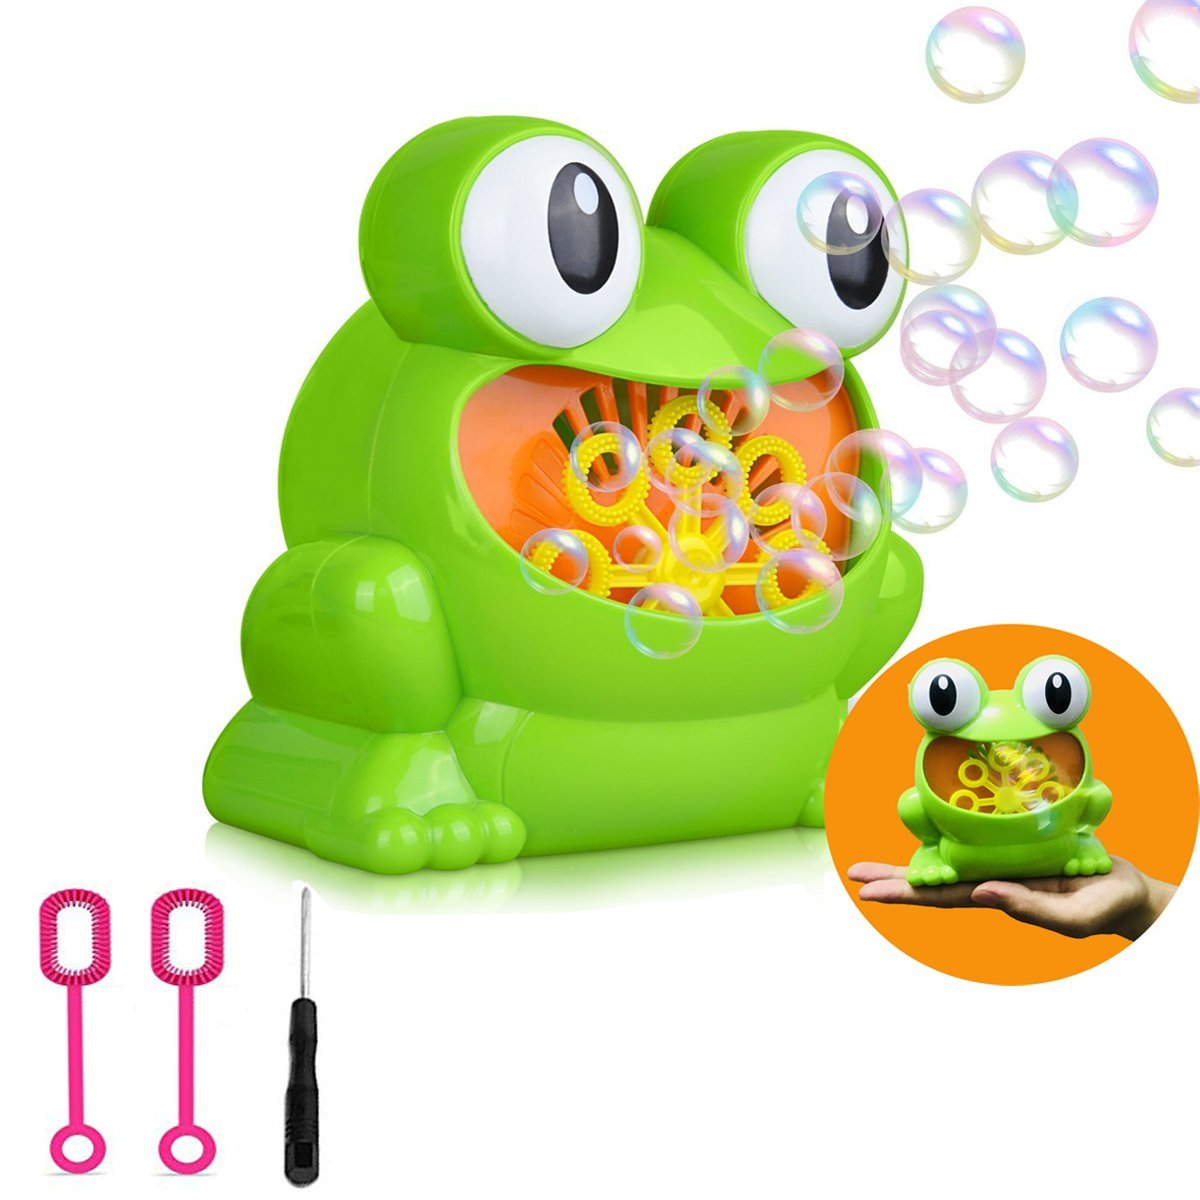 Automatic Bubble Machine, Green Frog Christmas Toys for Kids Durable Bubble Over 500 Bubbles Per Minute, Use Bubble Blowing Machine for Garden, Parties and Wedding, Battery Operated (Not Include)